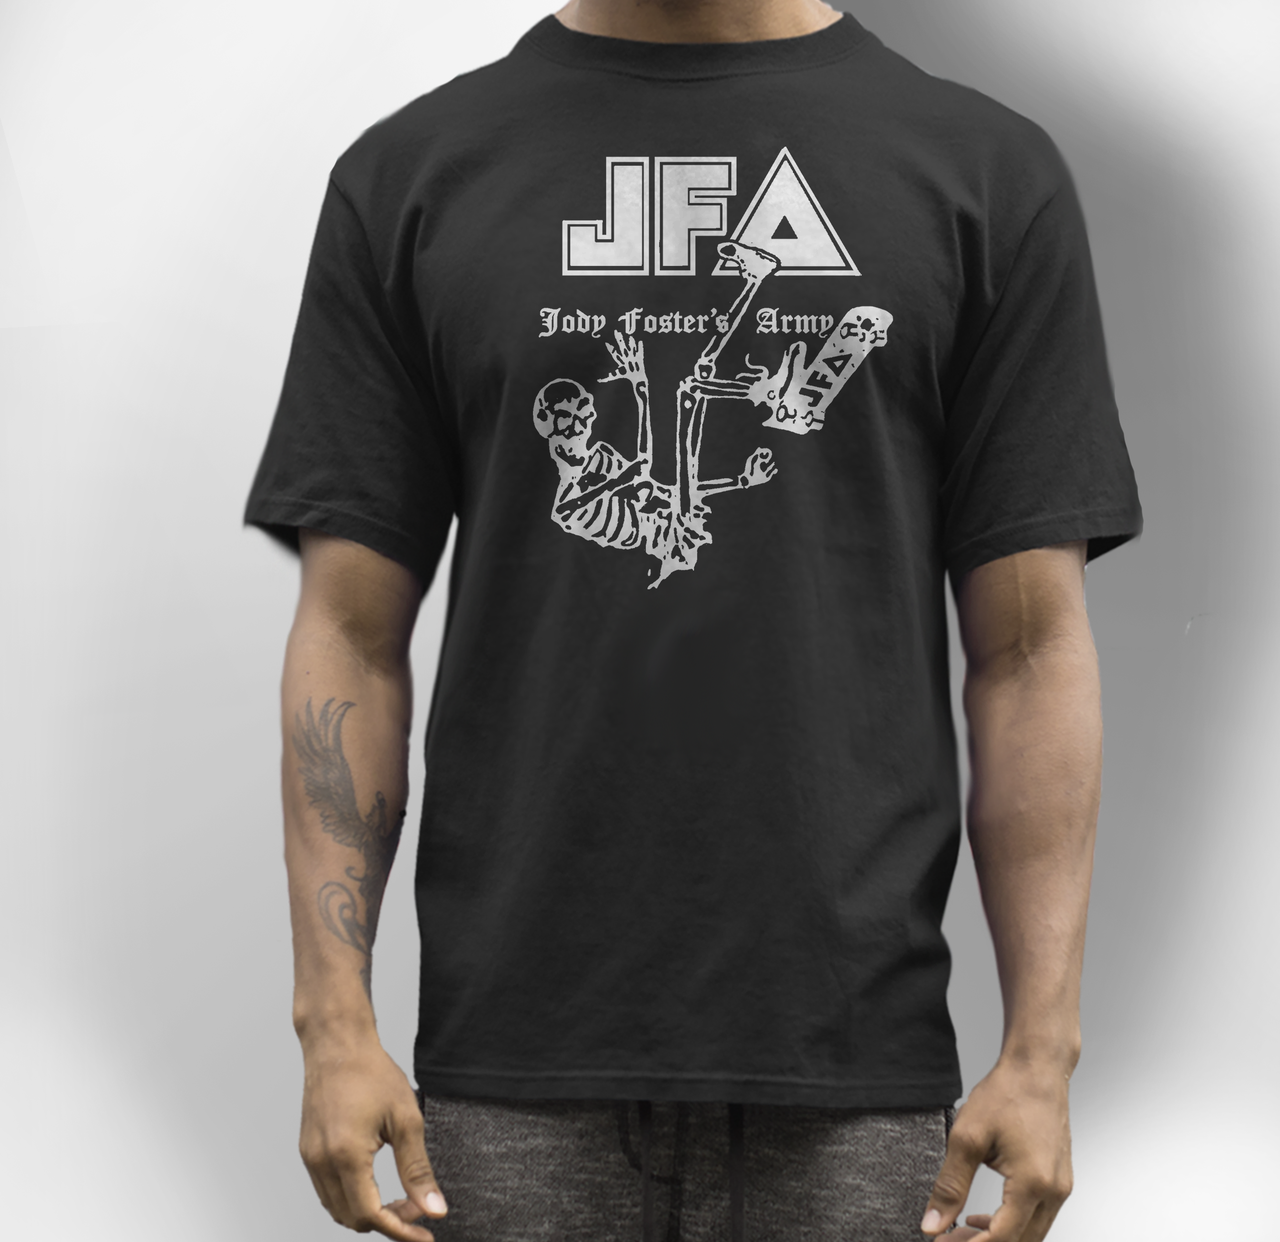 JFA band t shirt jody fosters army